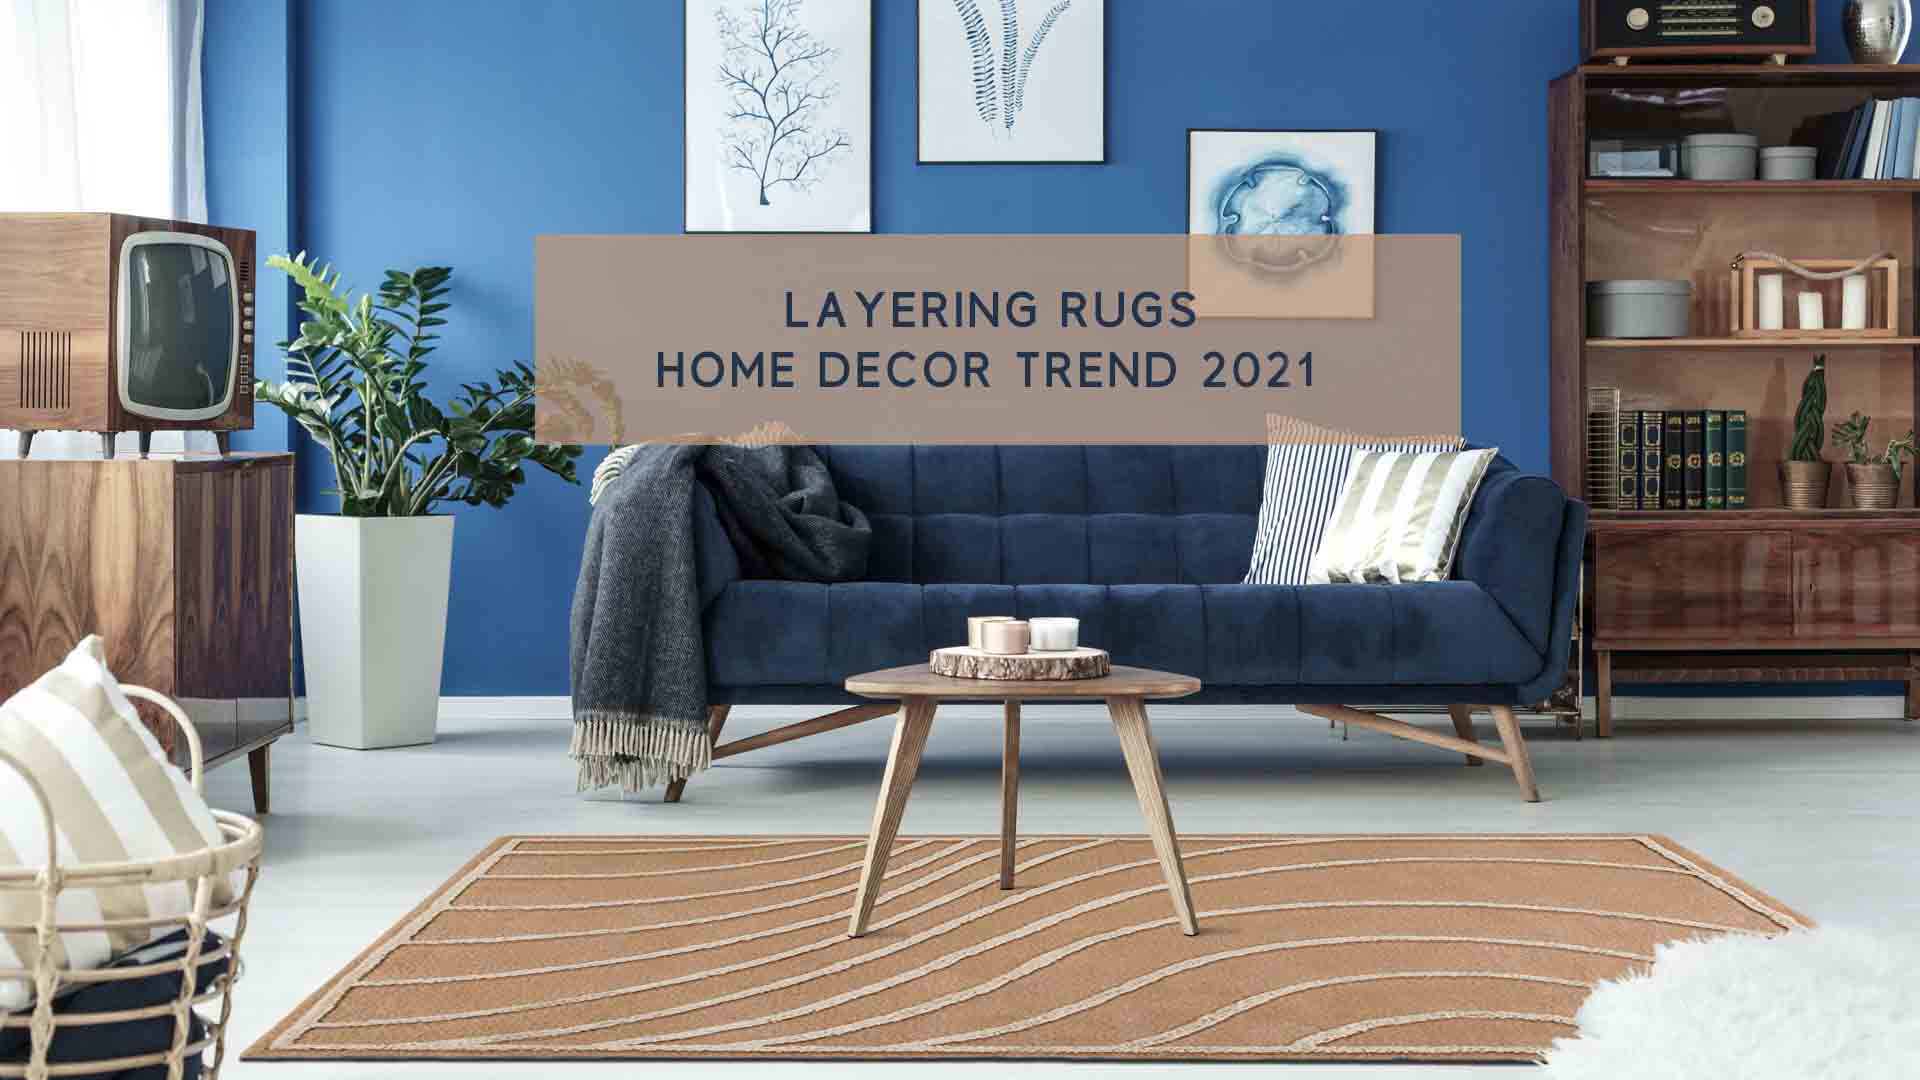 Layering Rugs Home Decor Trend 2021